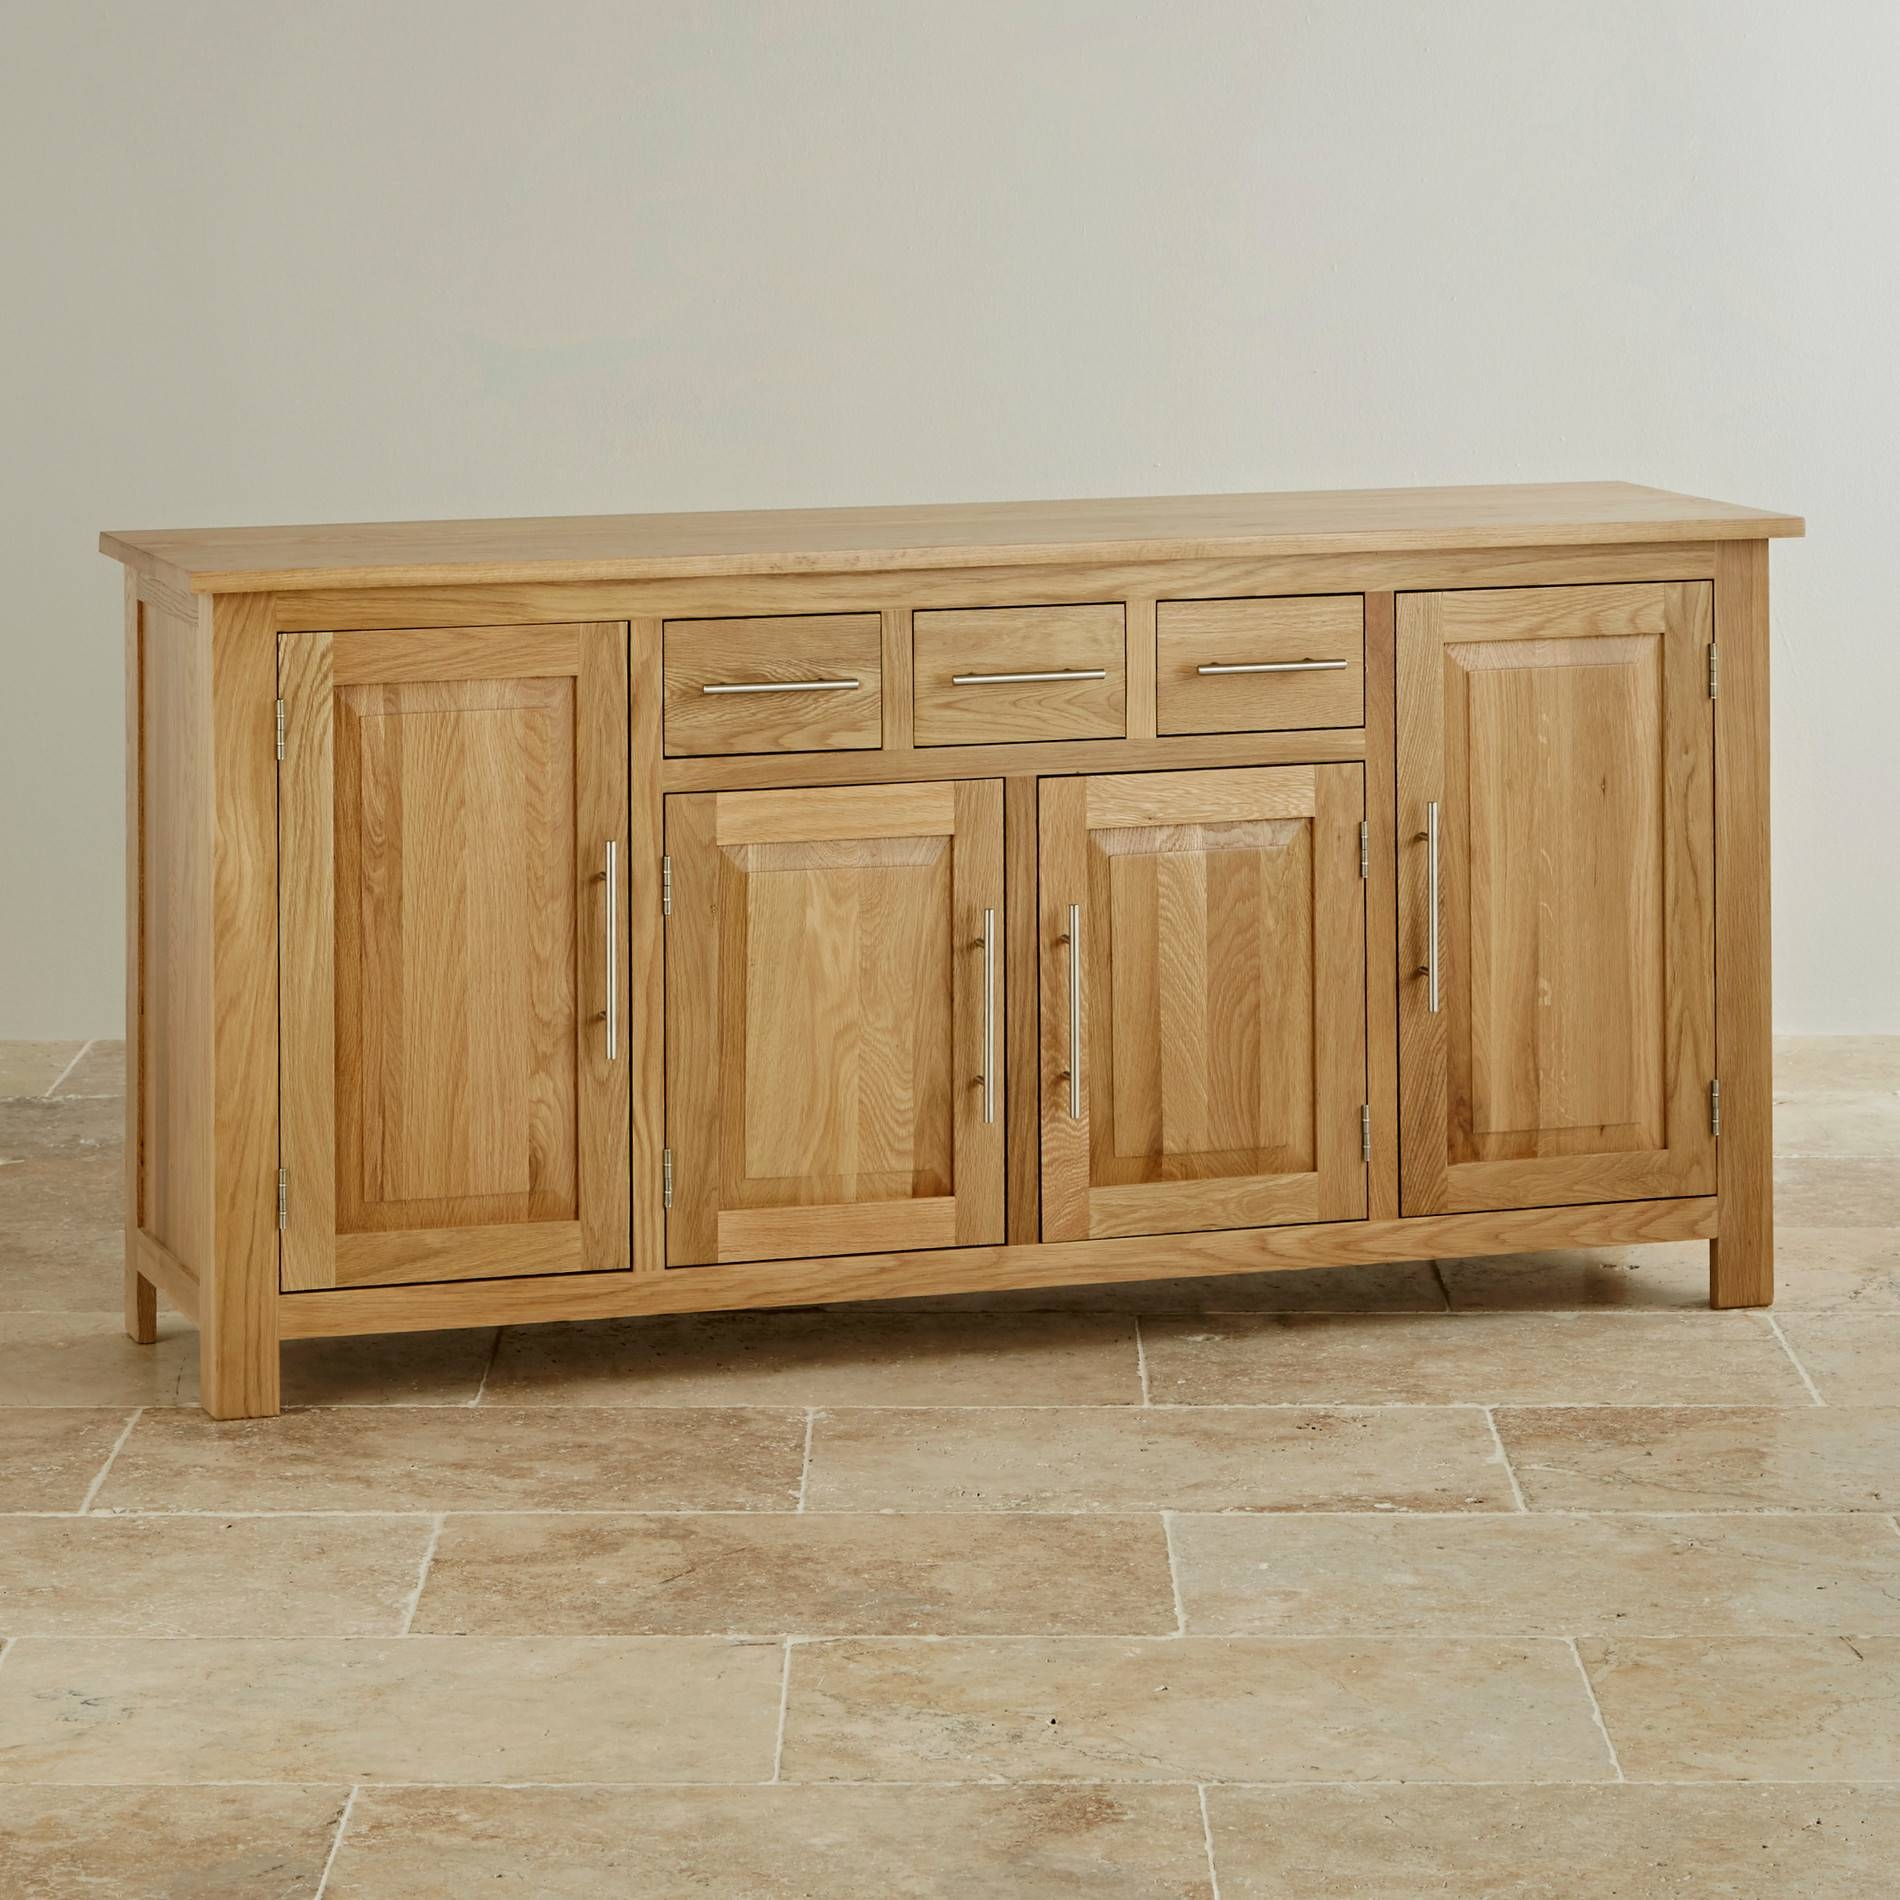 Rivermead Natural Solid Oak Large Sideboard | Oak Furniture Land with regard to Oak Sideboards For Sale (Image 15 of 30)